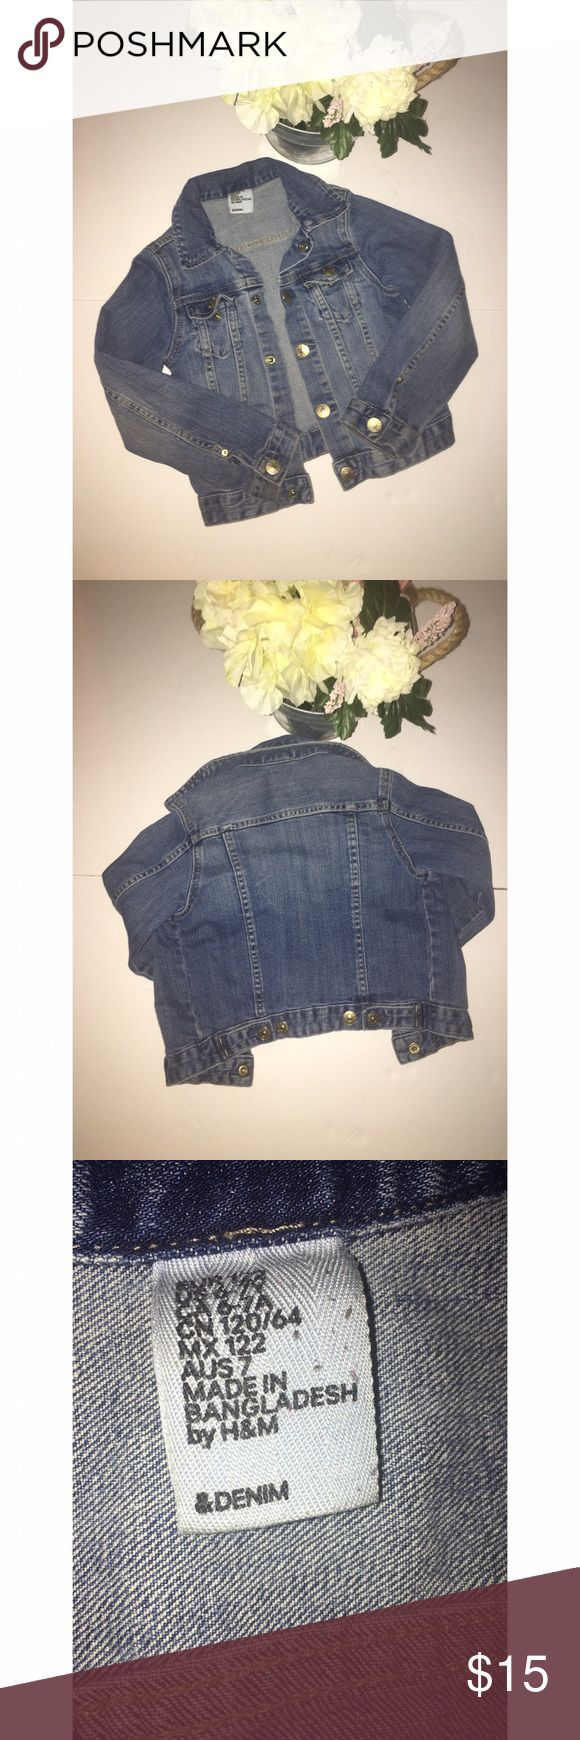 Girl H&M Denim Jacket Girl H&M Denim Jacket   Size: 6-7 Y   Versatile Denim jacket perfect for your little one on on those breezy summer evenings paired over any outfit  Make me an offer 😉 H&M Jackets & Coats Jean Jackets